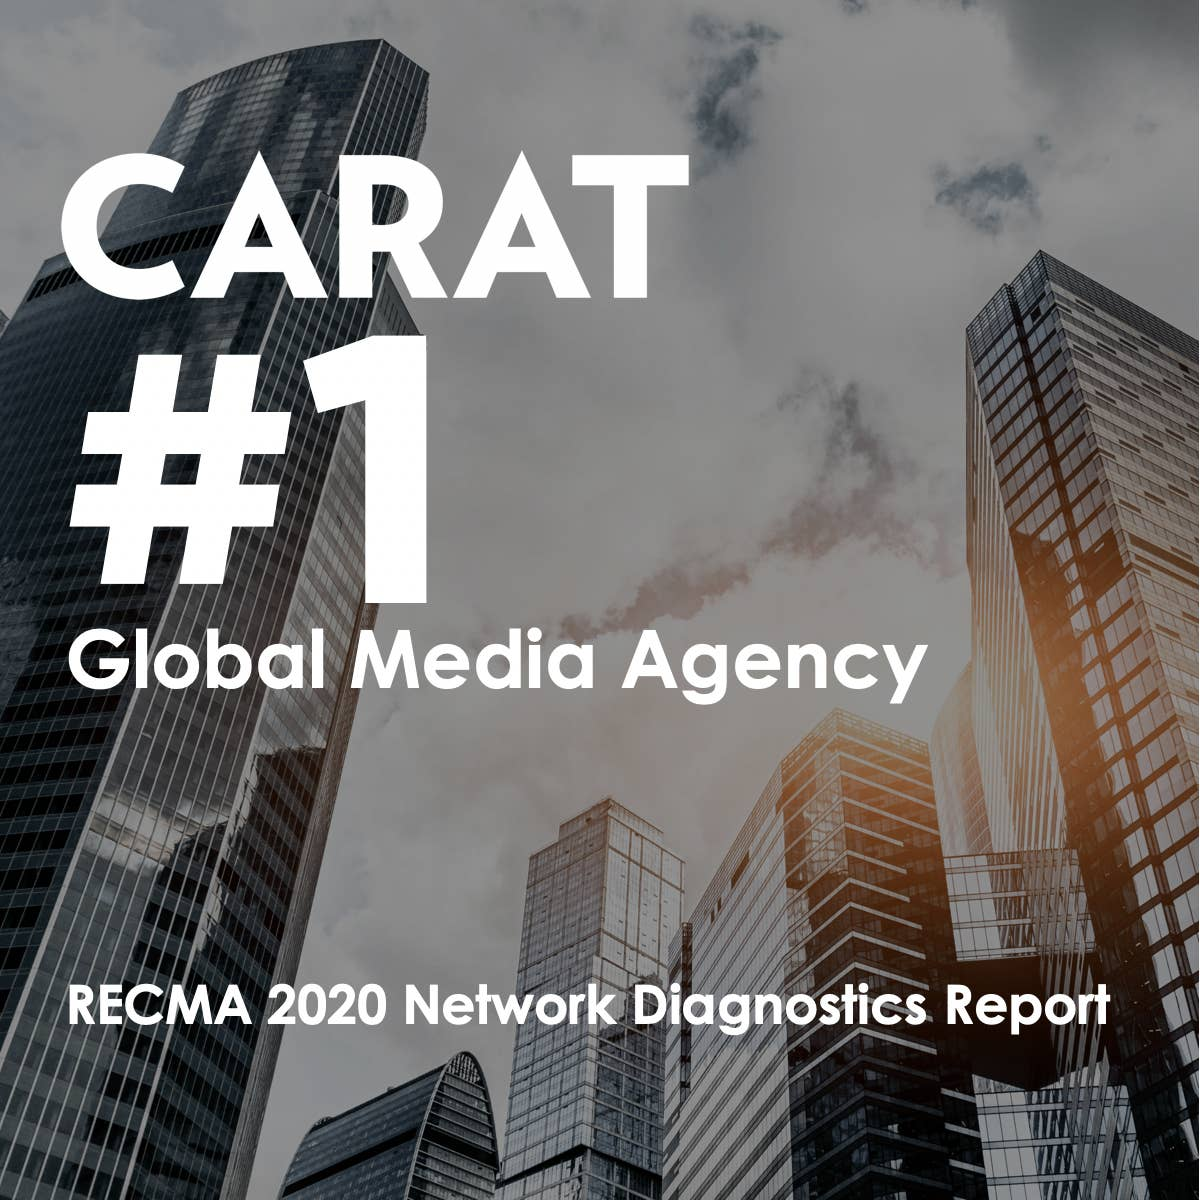 Carat Retains #1 Position in RECMA